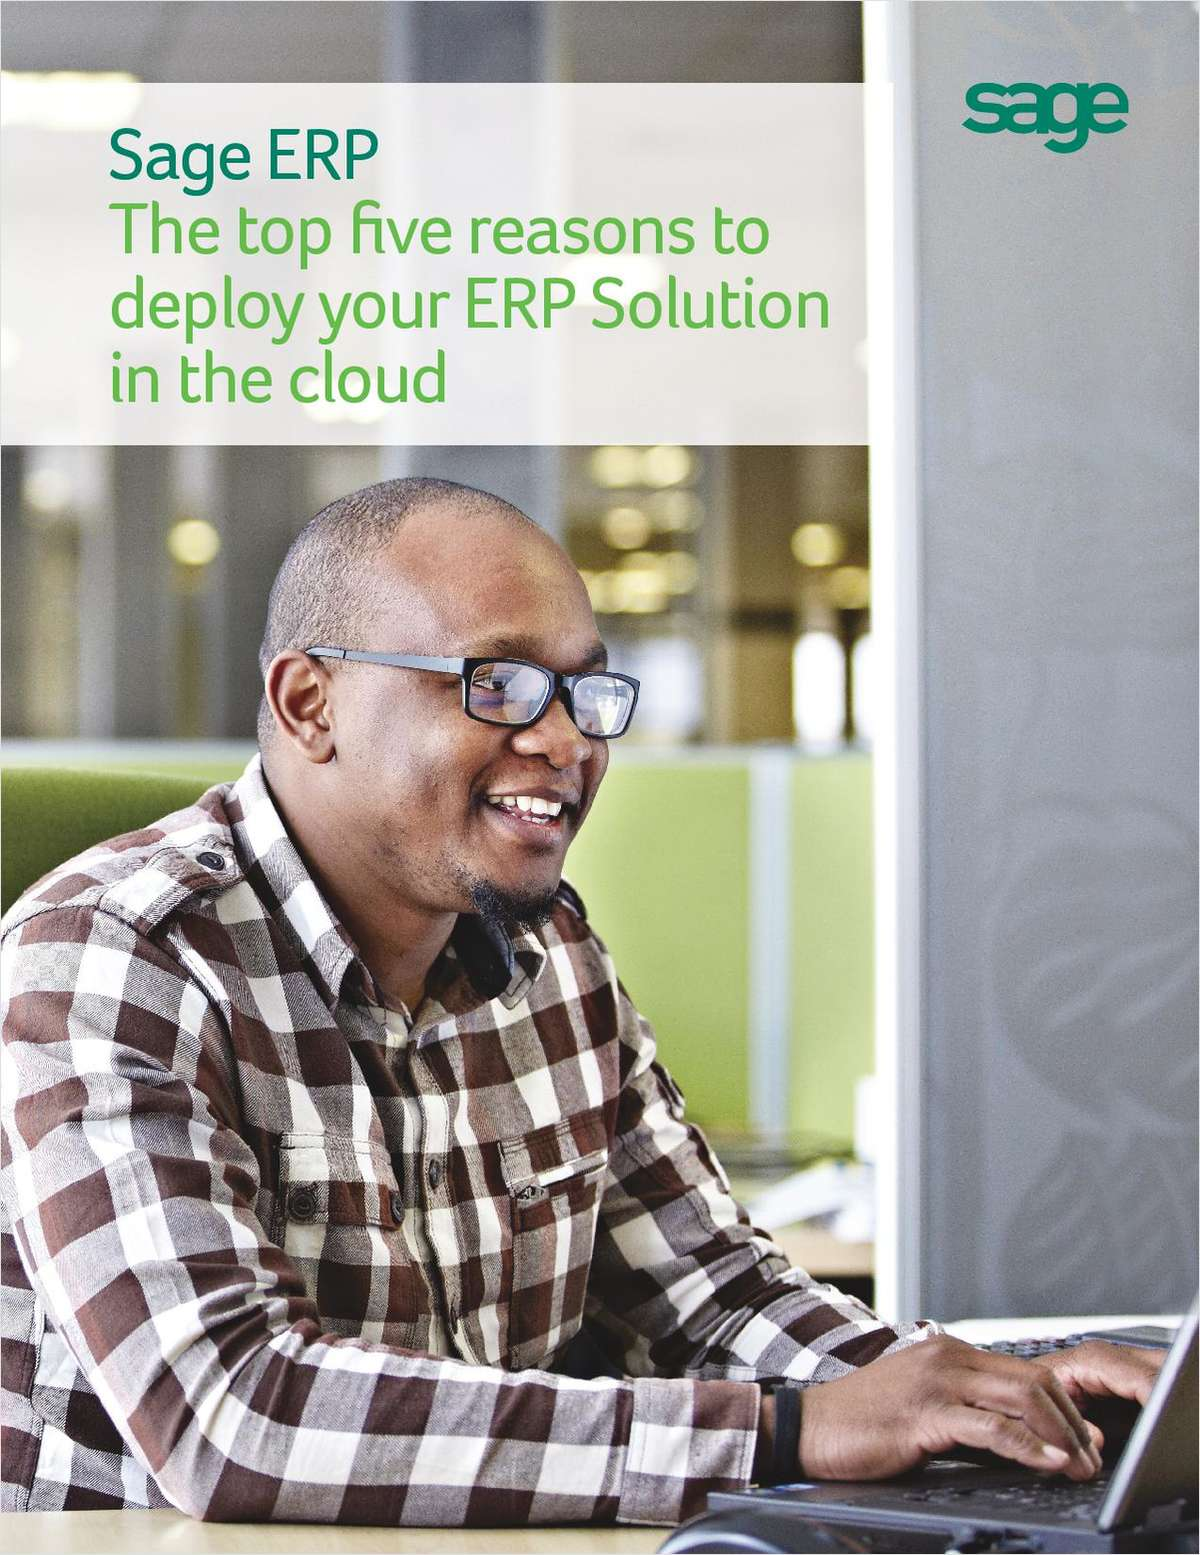 Sage ERP: The Top Five Reasons to Deploy your ERP Solution in the Cloud